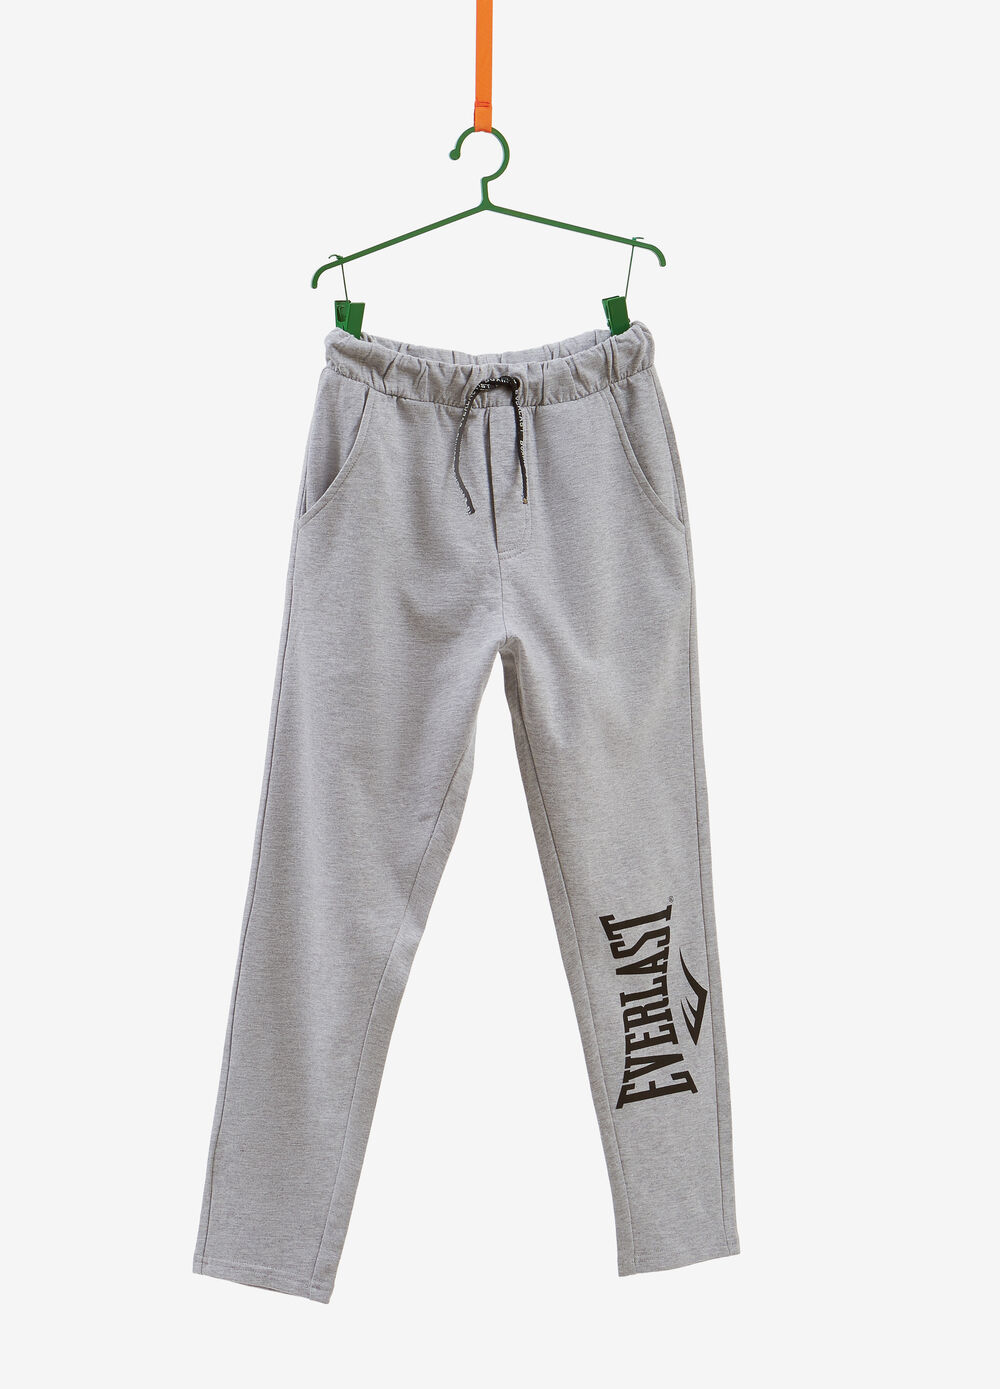 Everlast cotton and viscose trousers